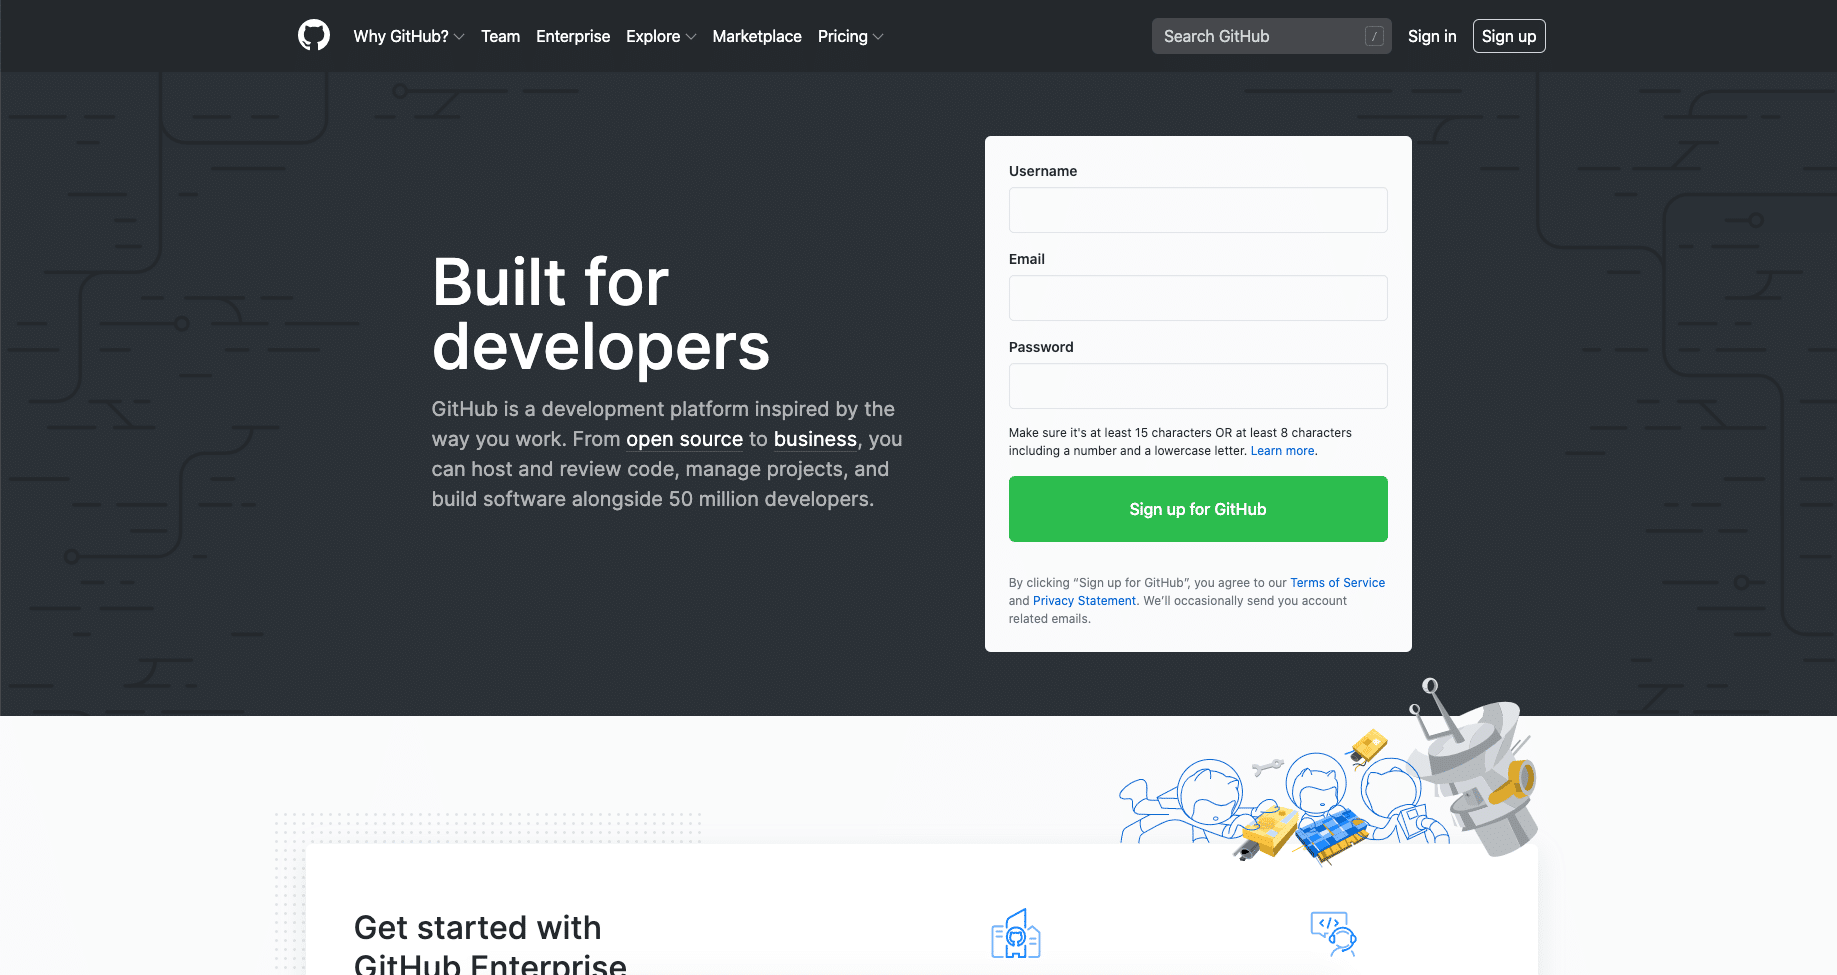 The GitHub website home page